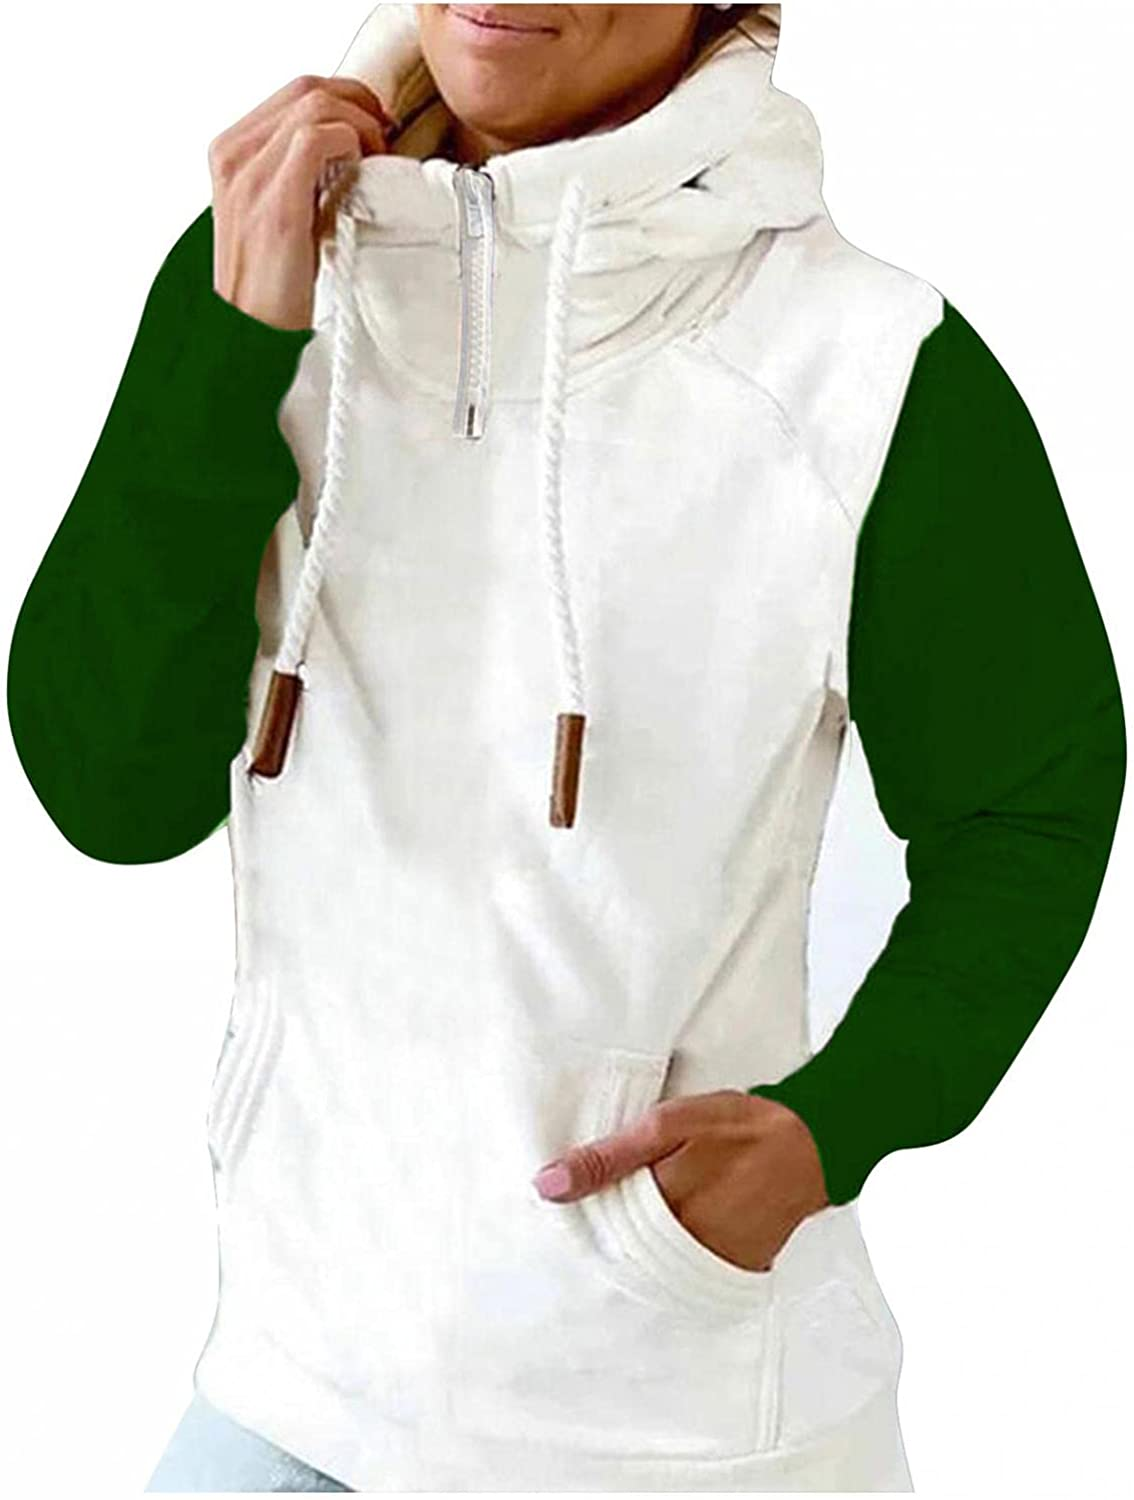 Gibobby Hooded Sweatshirts for Women 1/4 Zipper Pullover Casual Button Pocket Long Sleeve Blouses Drawstring Hoodies Top